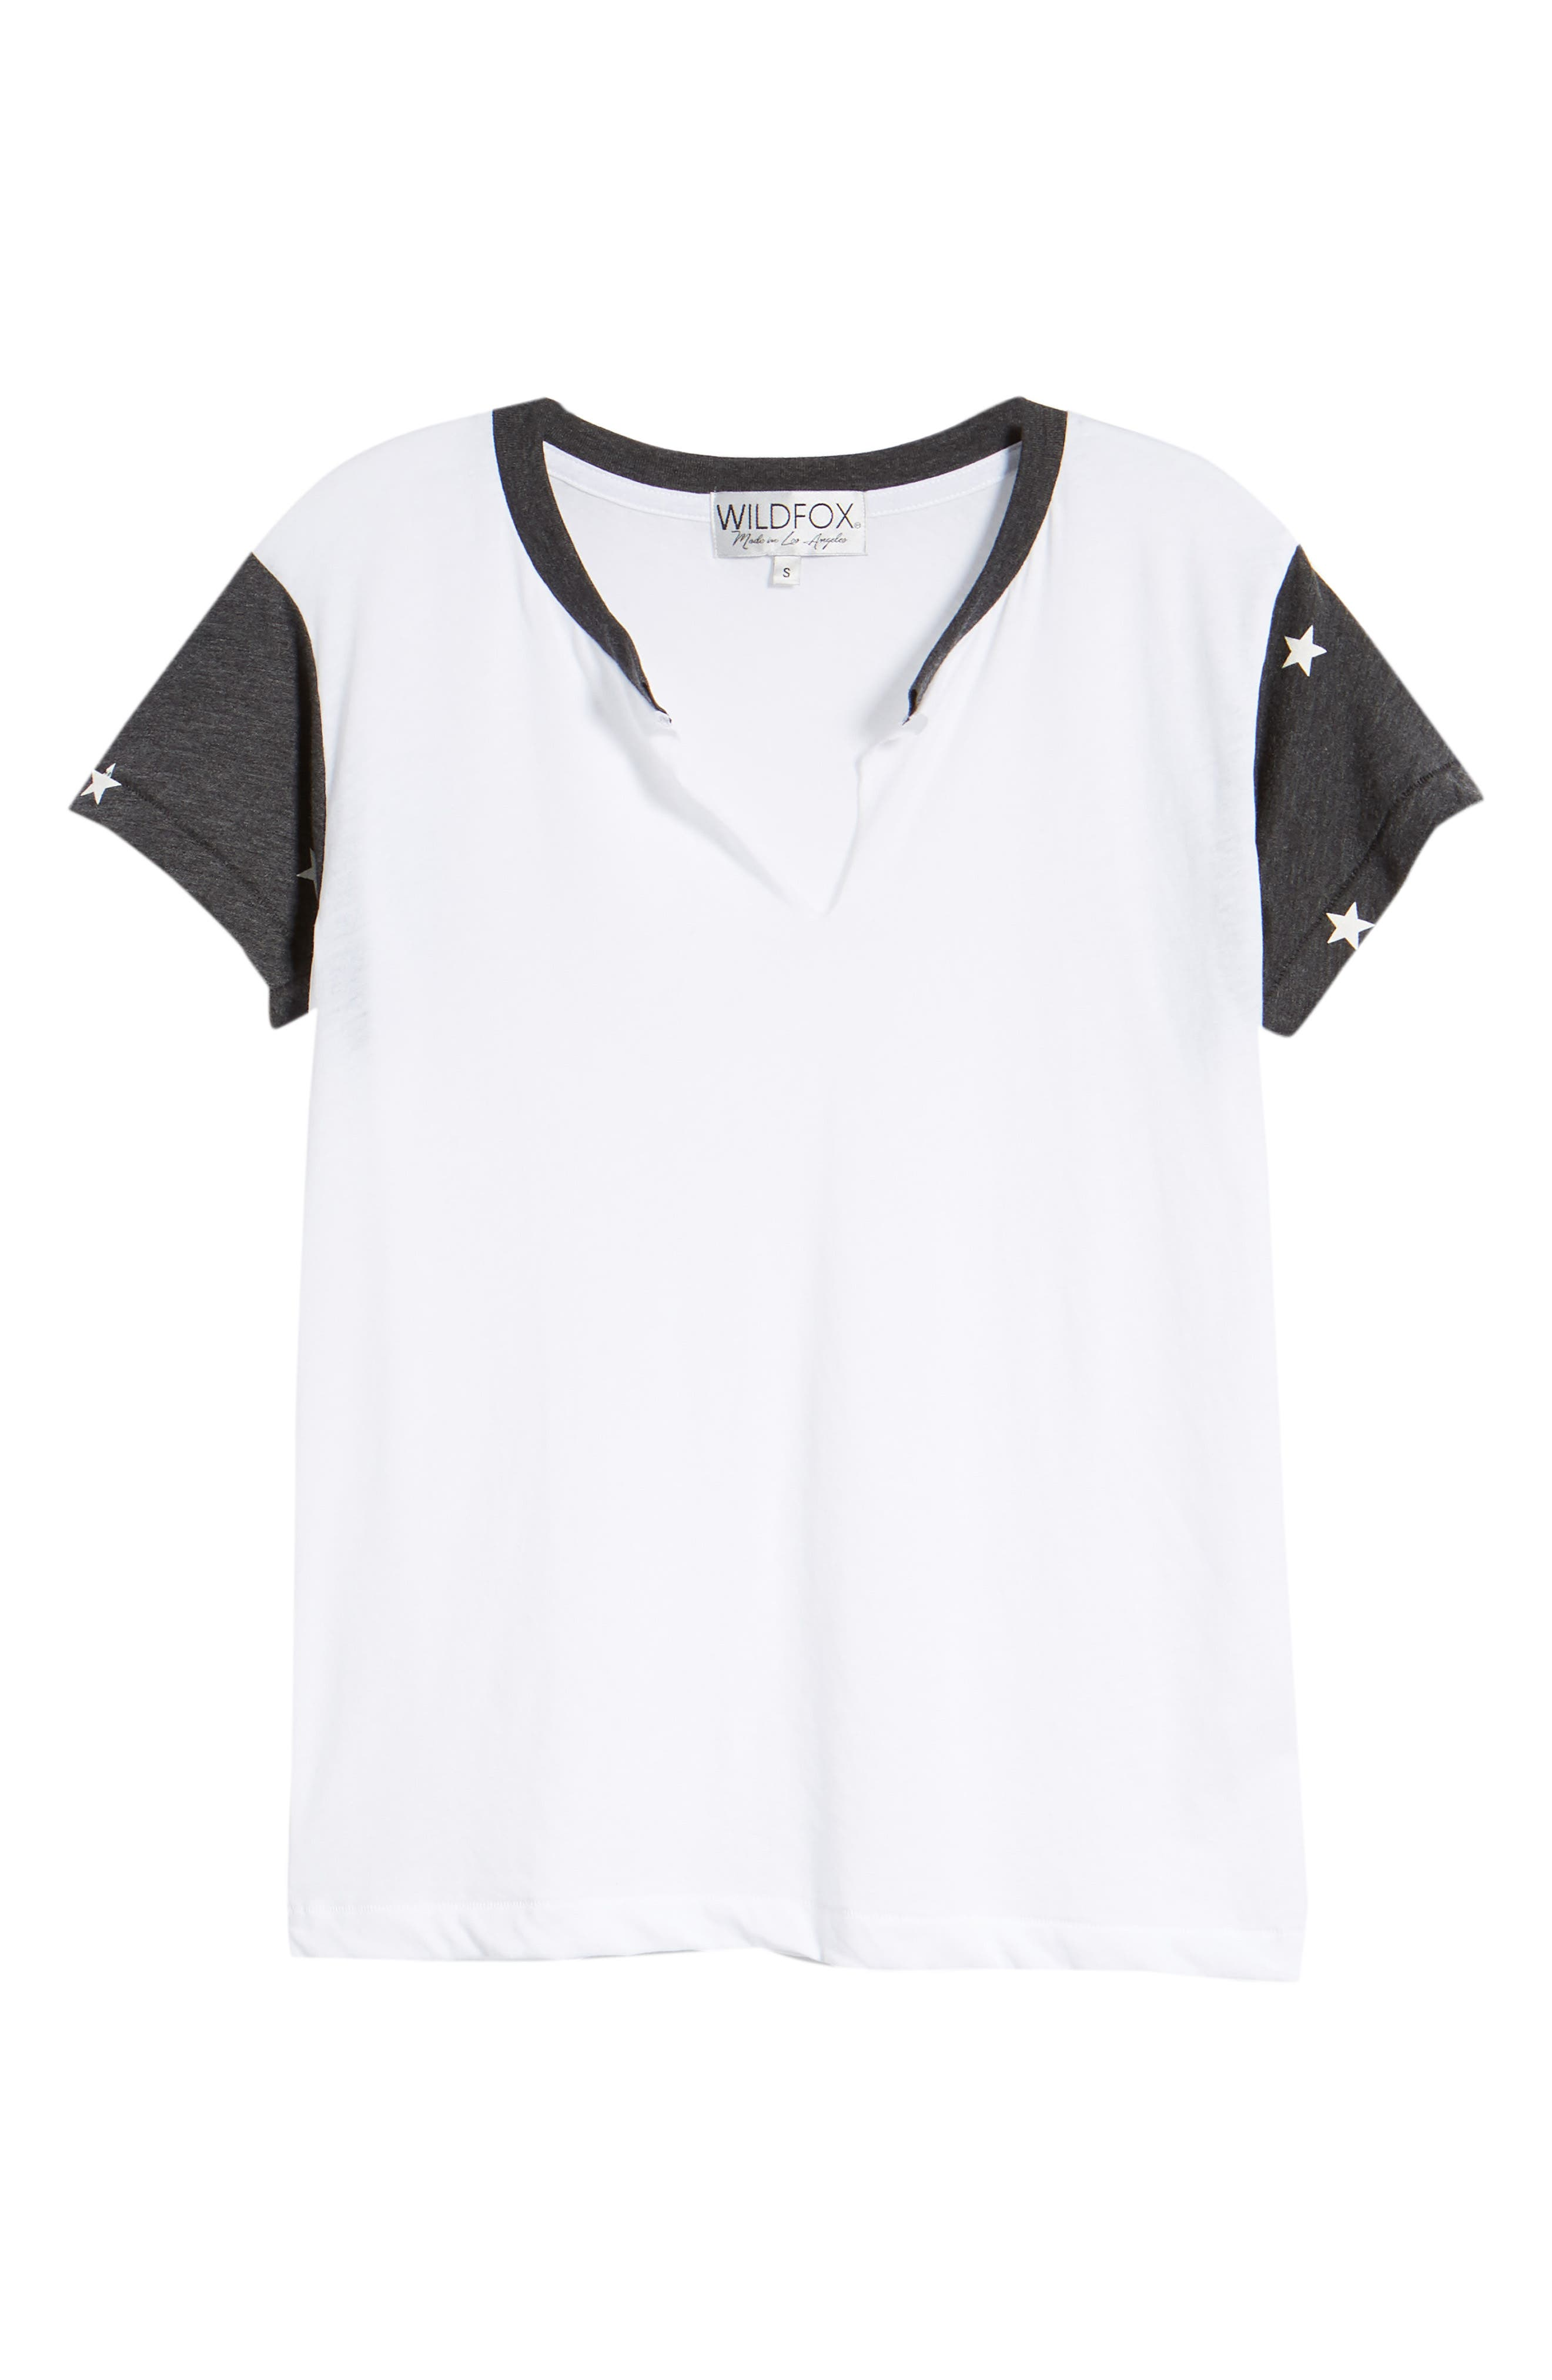 Football Star Woody Tee,                             Alternate thumbnail 7, color,                             Clean White / Clean Black